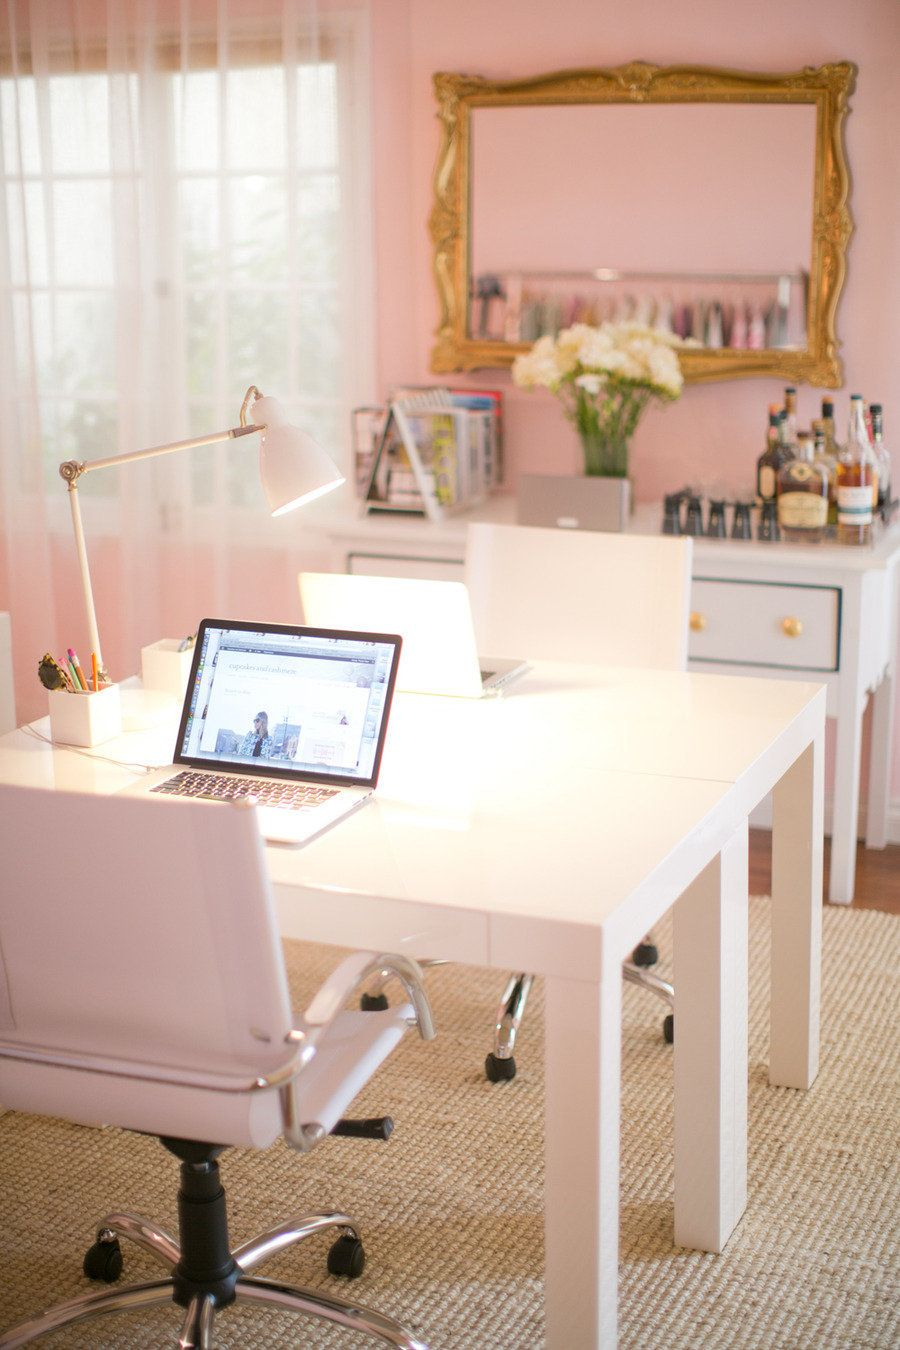 Girly Feminine Pink Home Office Desk Home Decor Interior Design Apartment